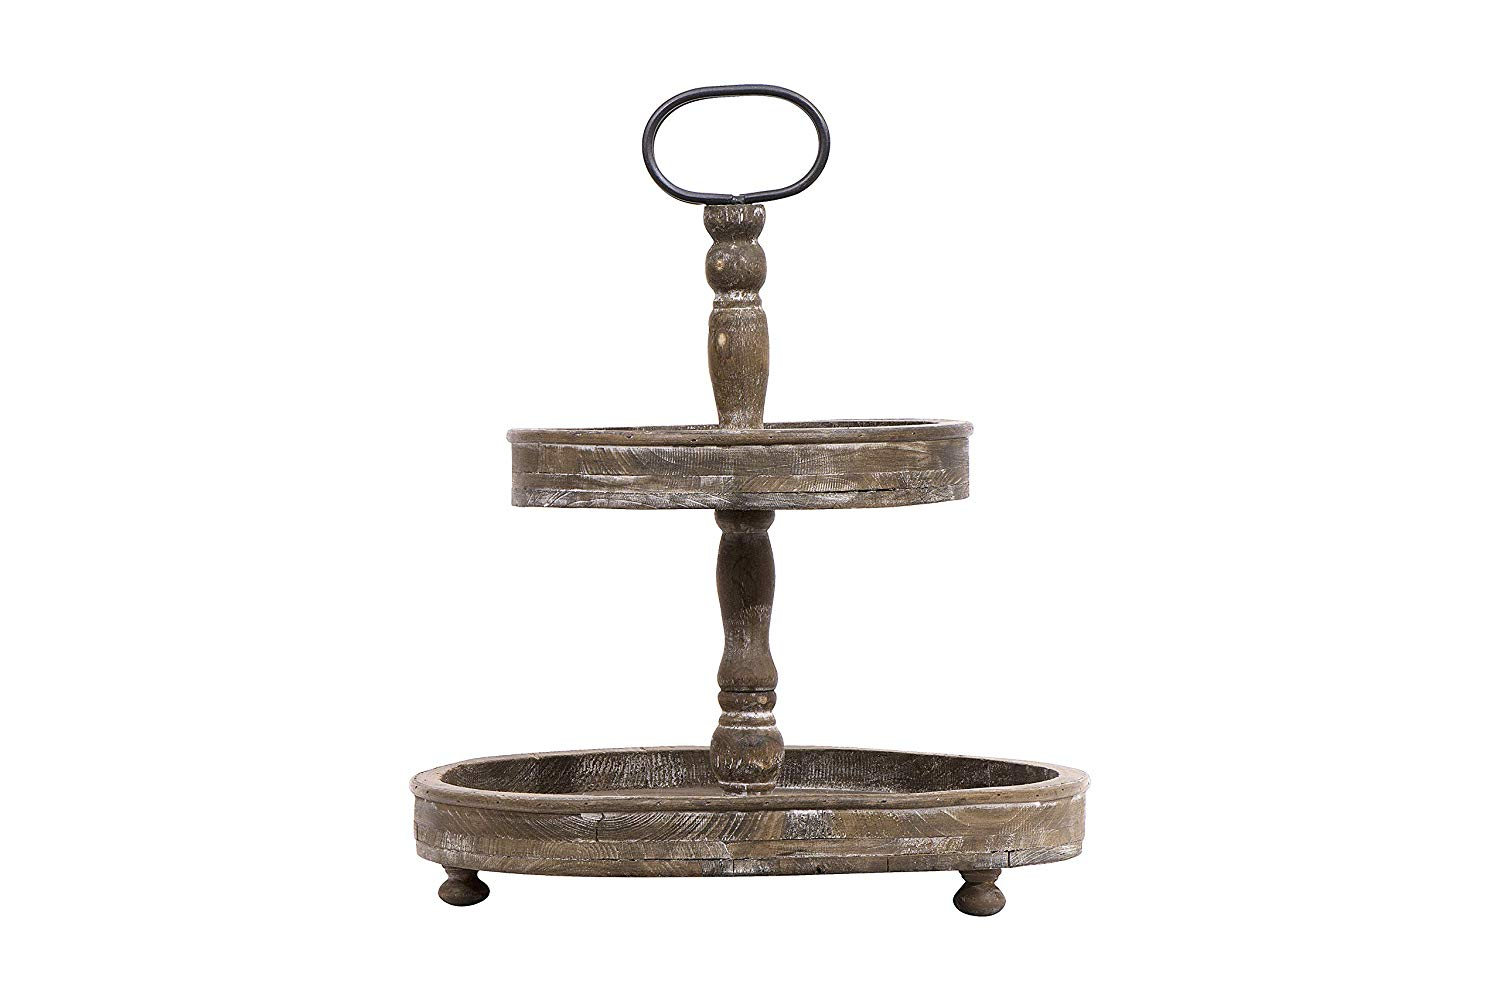 The perfect addition to your kitchen countertop or bedroom dresser, this Creative Co-Op Distressed Brown Wood Metal Handle Two-Tier Tray adds height and a great place to display all of your little finds.